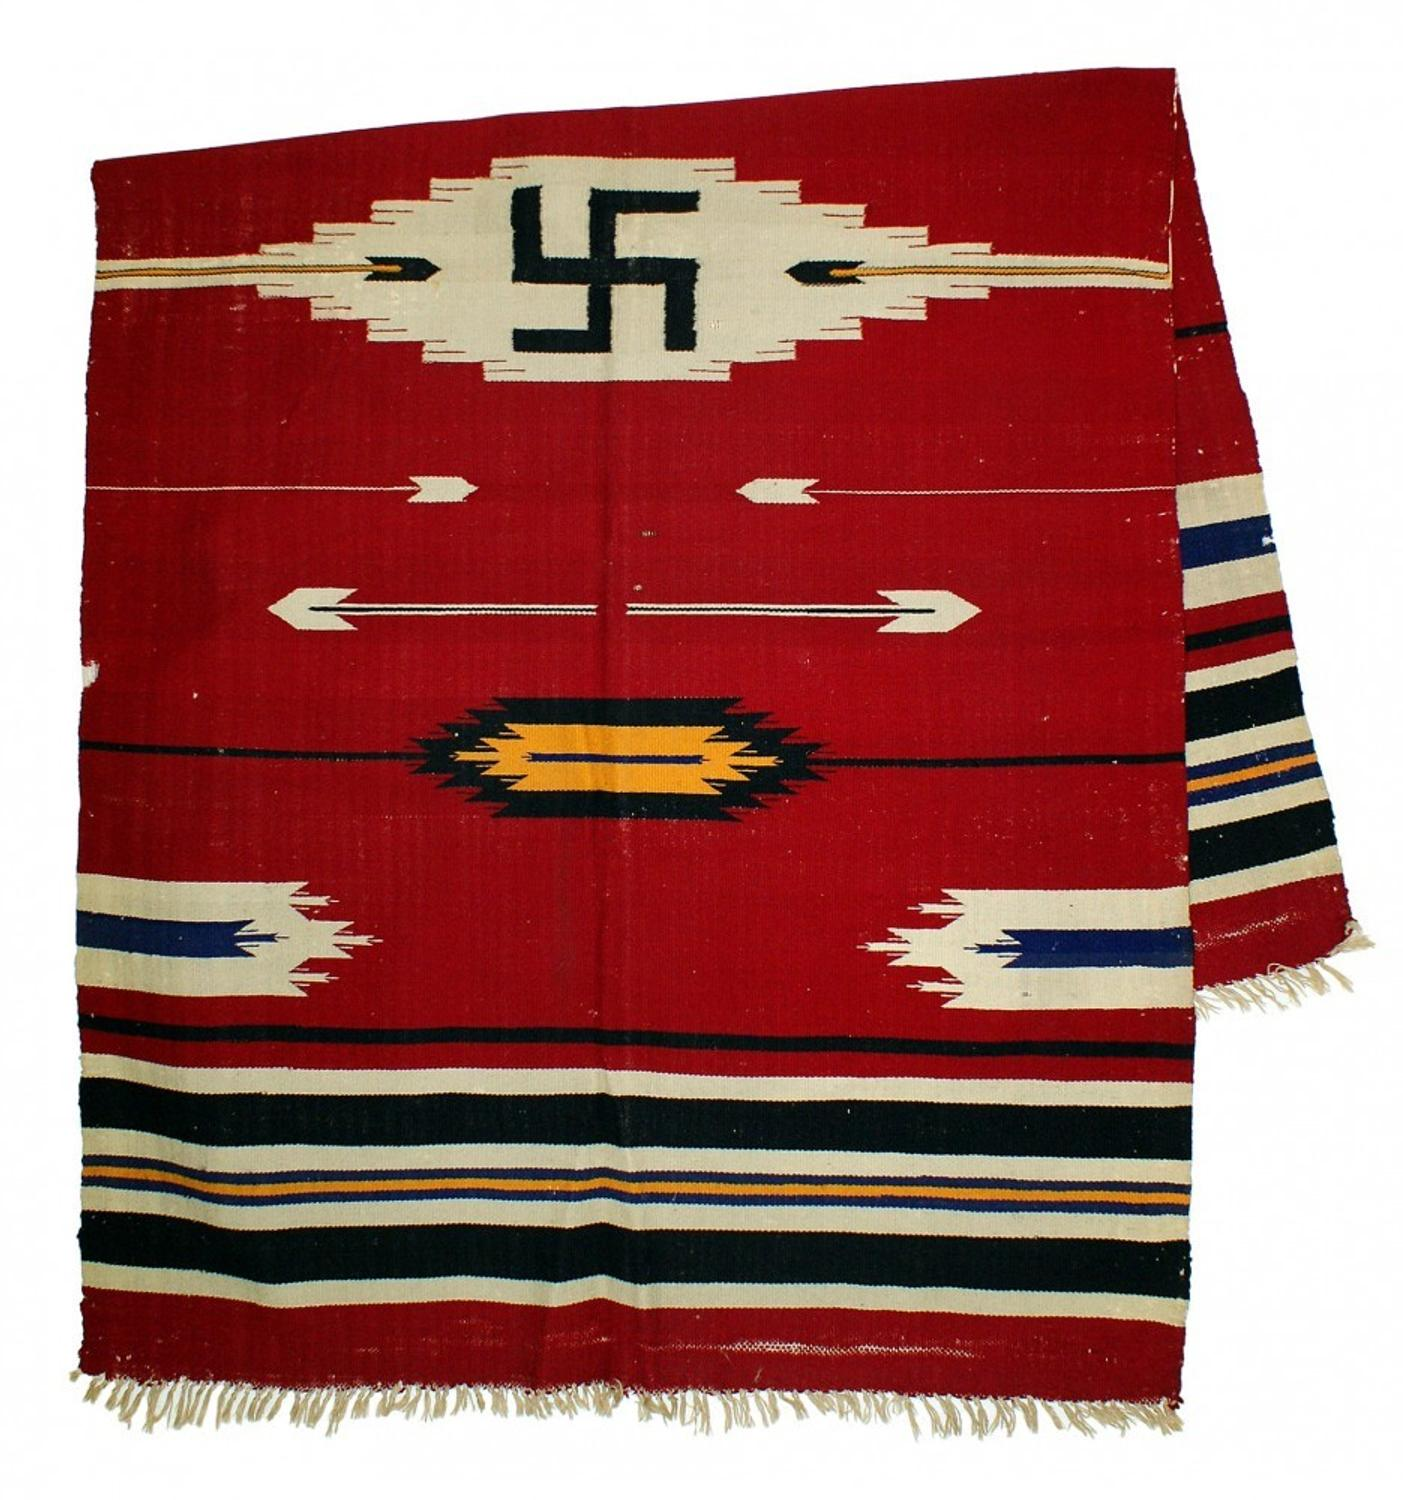 Navajo indian designs Navajo Blanket Antique Navajo Blanket With Swastika Design American Plains Indian Pipe Tomahawk Will Lead Mohawk Arms Auction 73 Art Fix Daily Antique Navajo Blanket With Swastika Design American Plains Indian